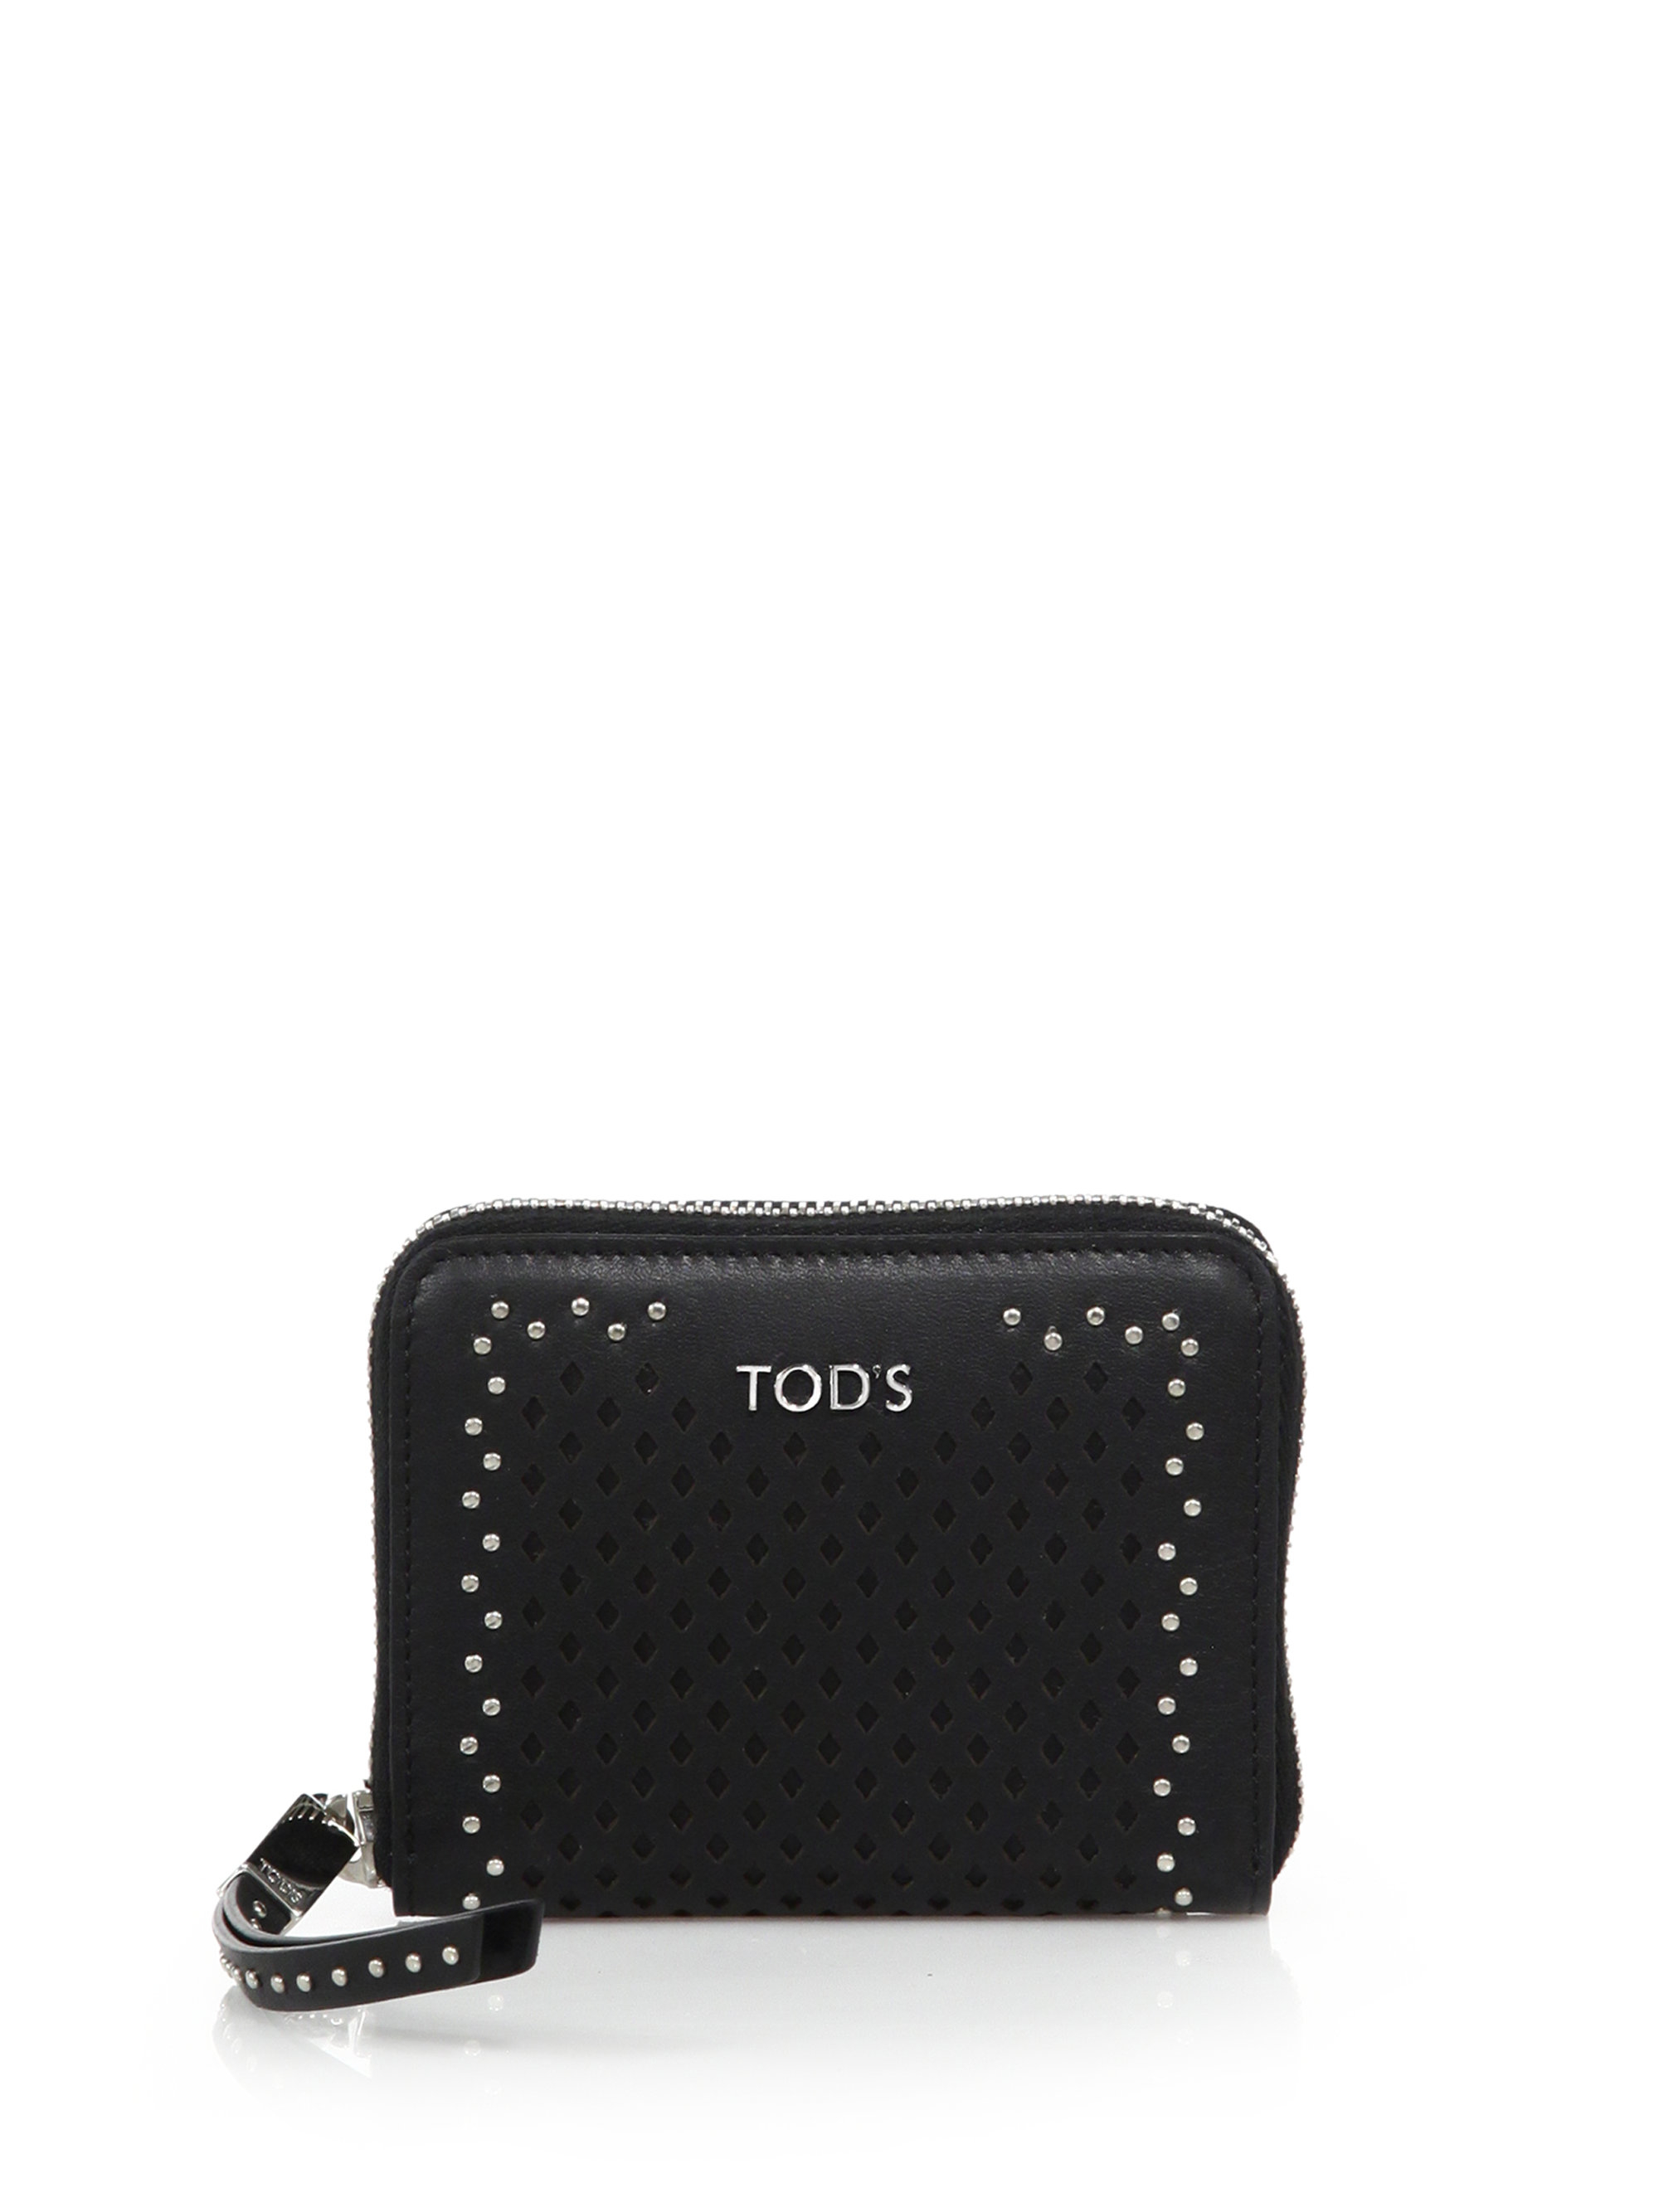 dc0946d23c8 Tod's Small Studded Laser-cut Leather Zip Wallet in Black - Lyst